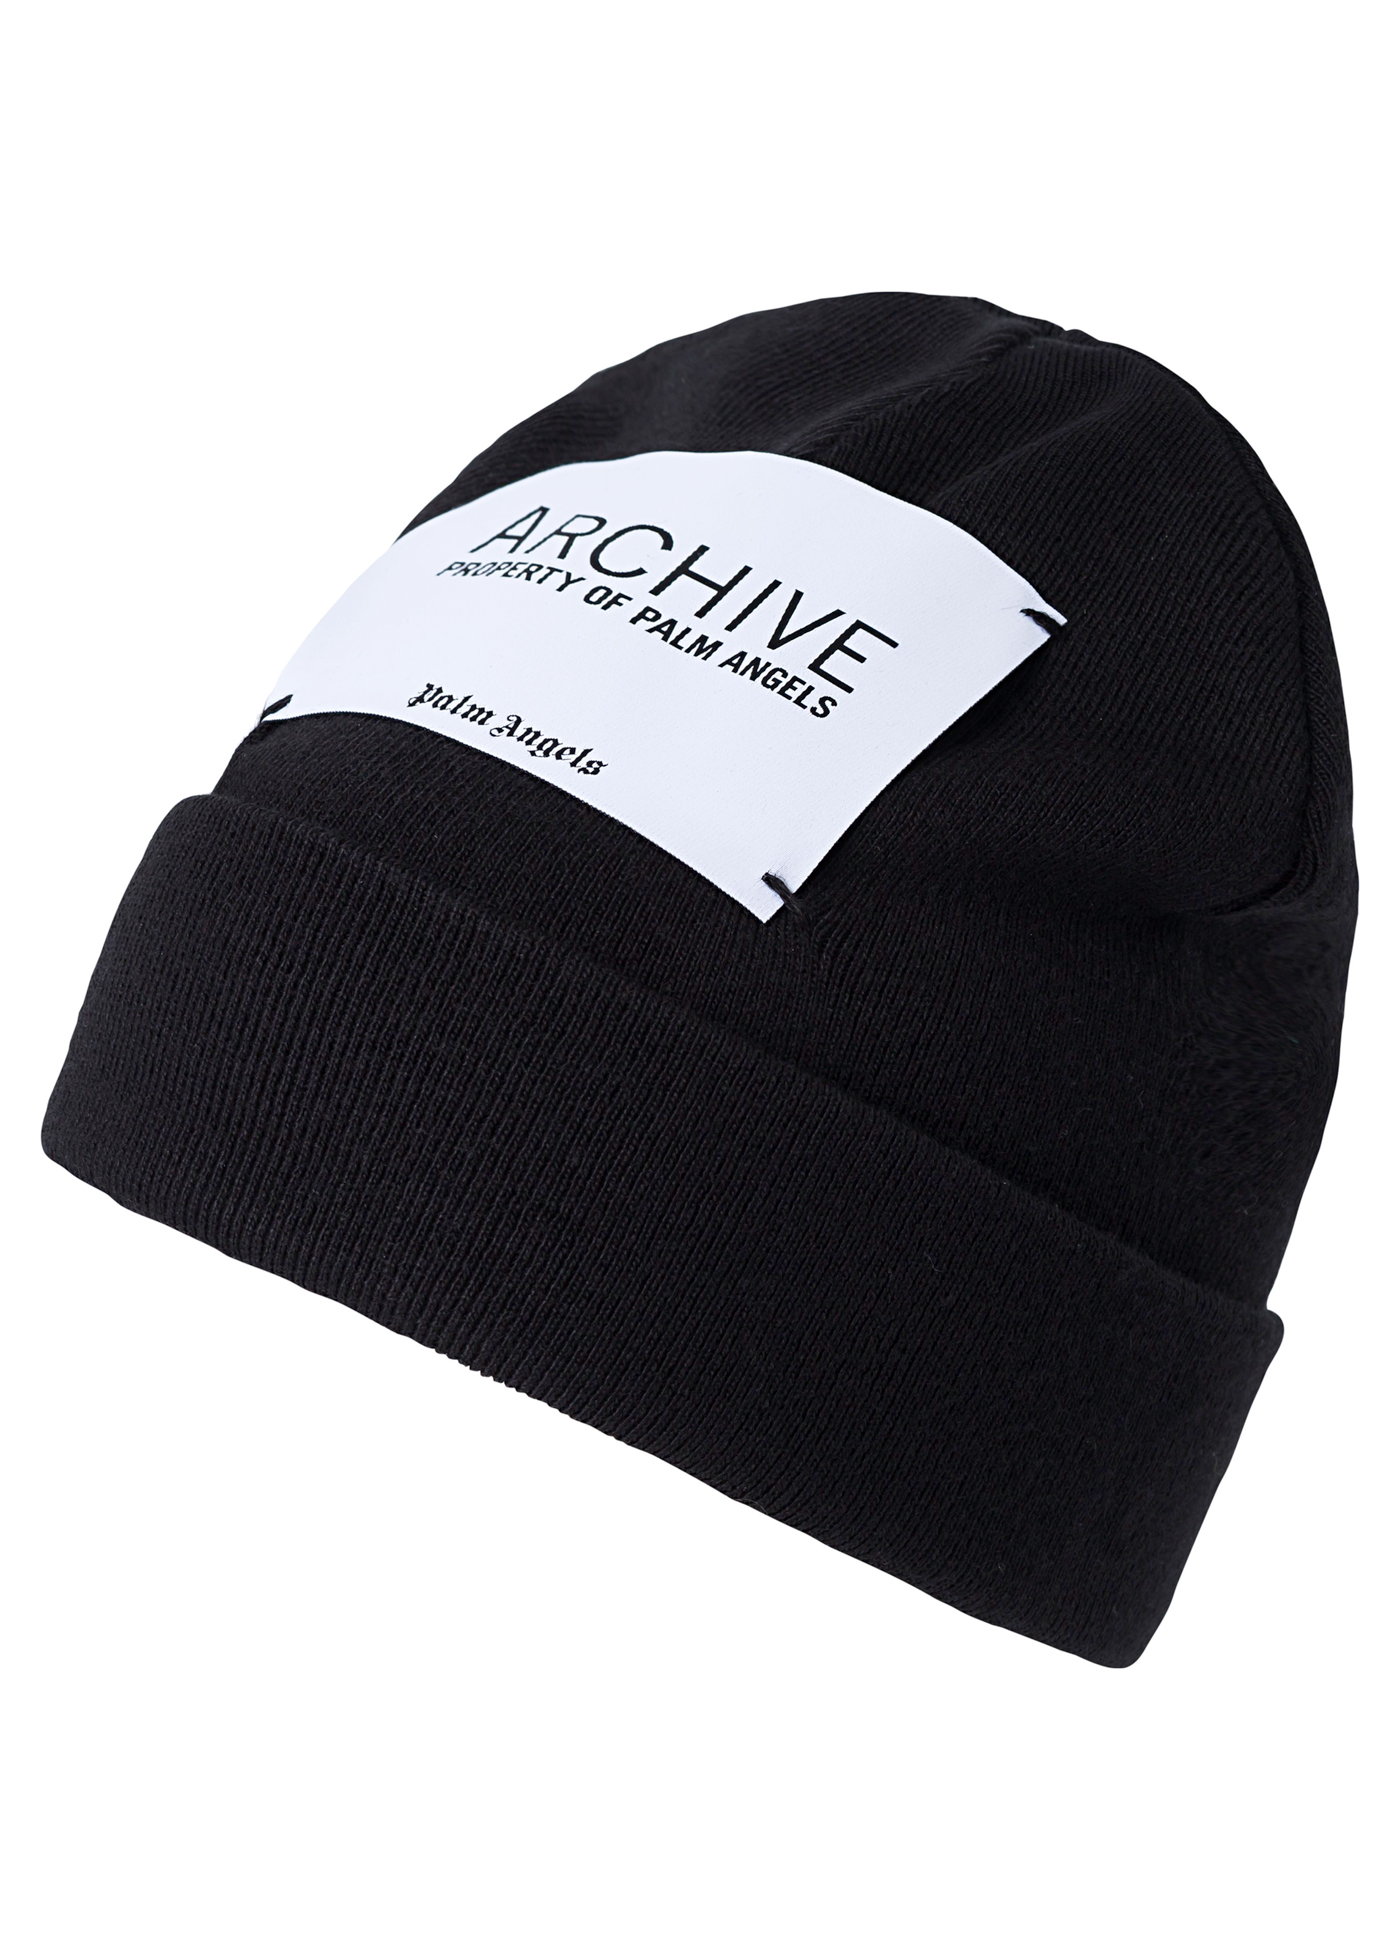 ARCHIVE BEANIE  BLACK WHITE image number 0